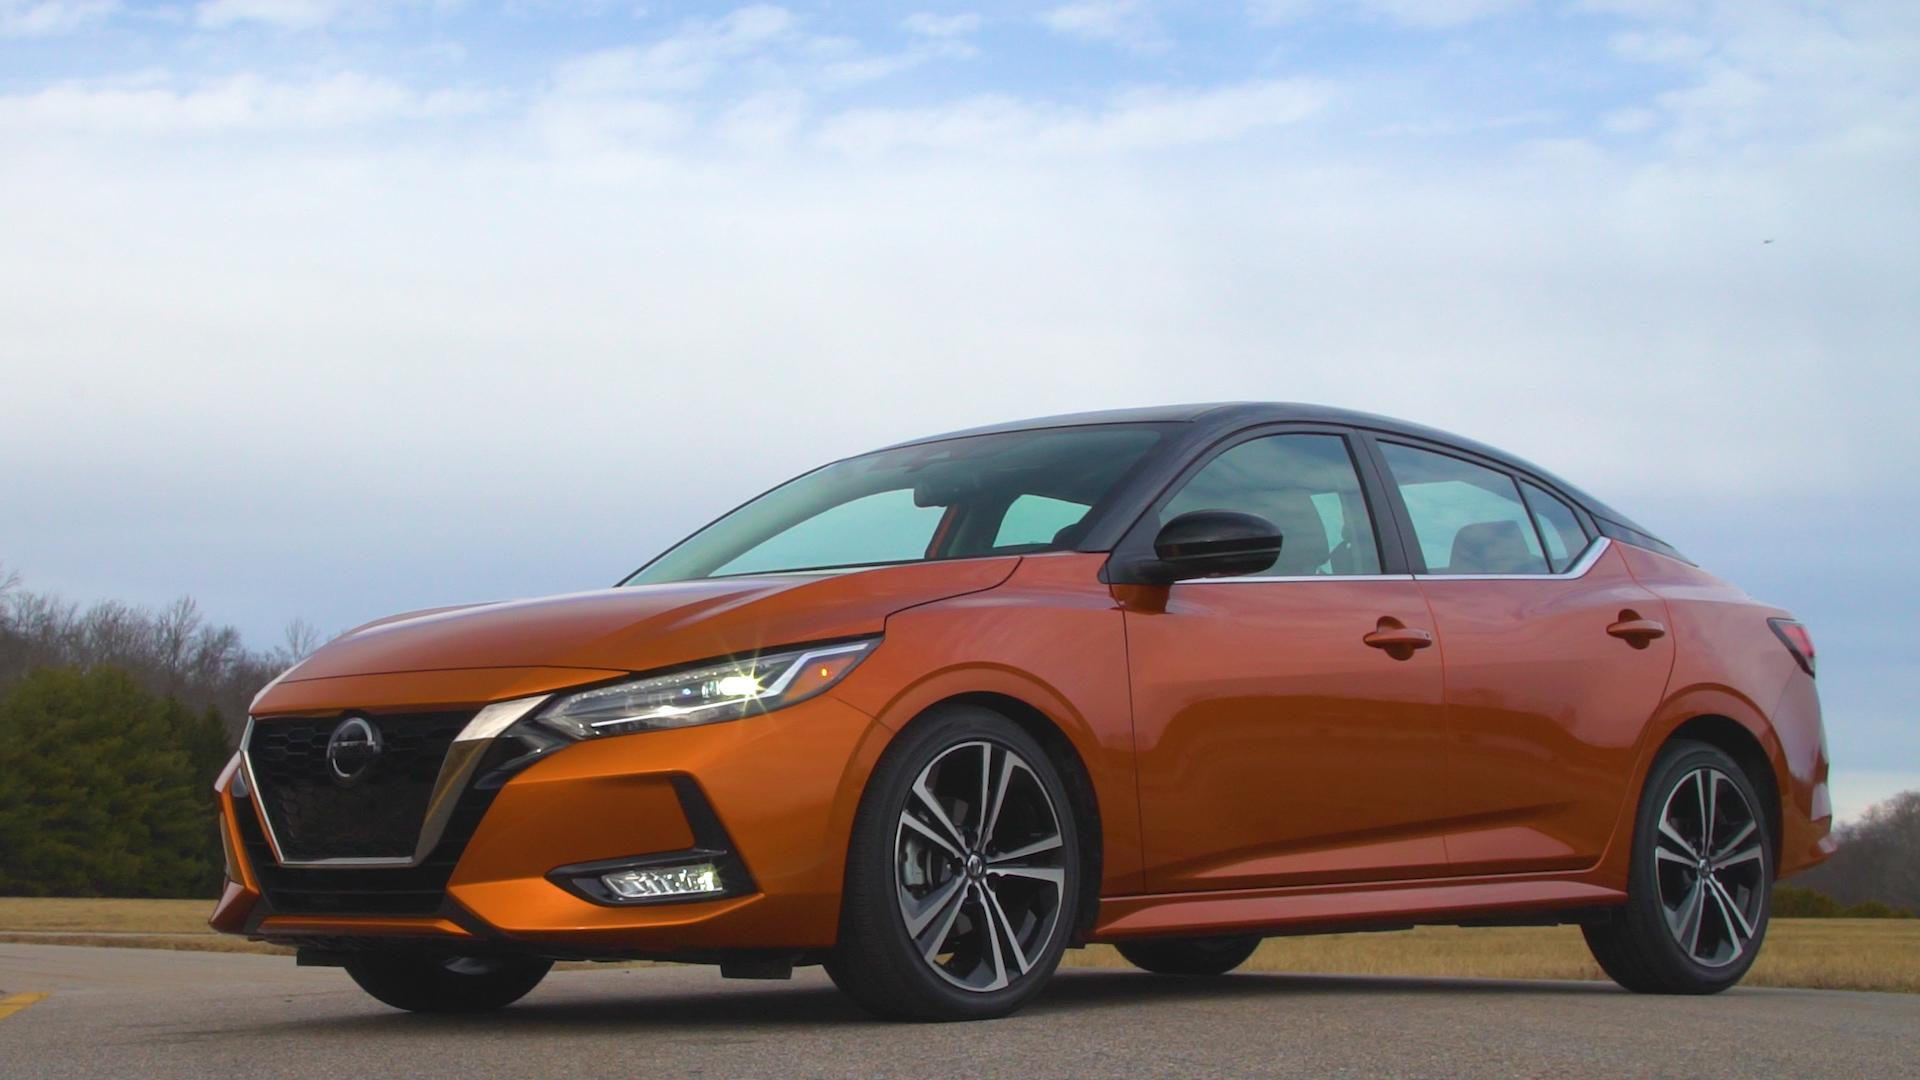 2020 Nissan Sentra Price, Design and Review